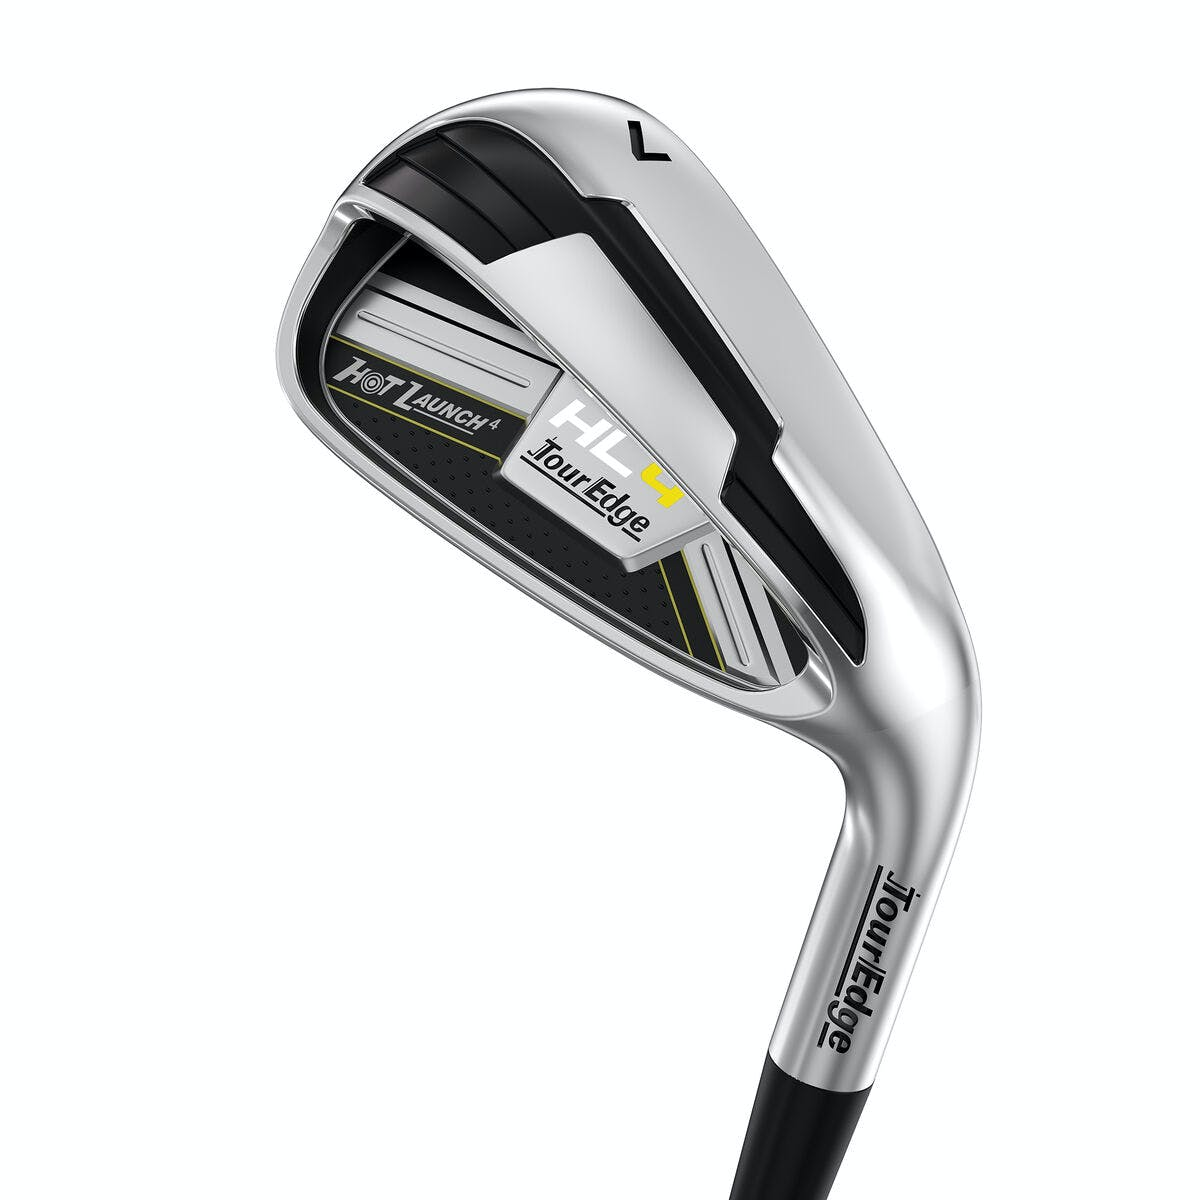 Tour Edge HL4 Single Irons